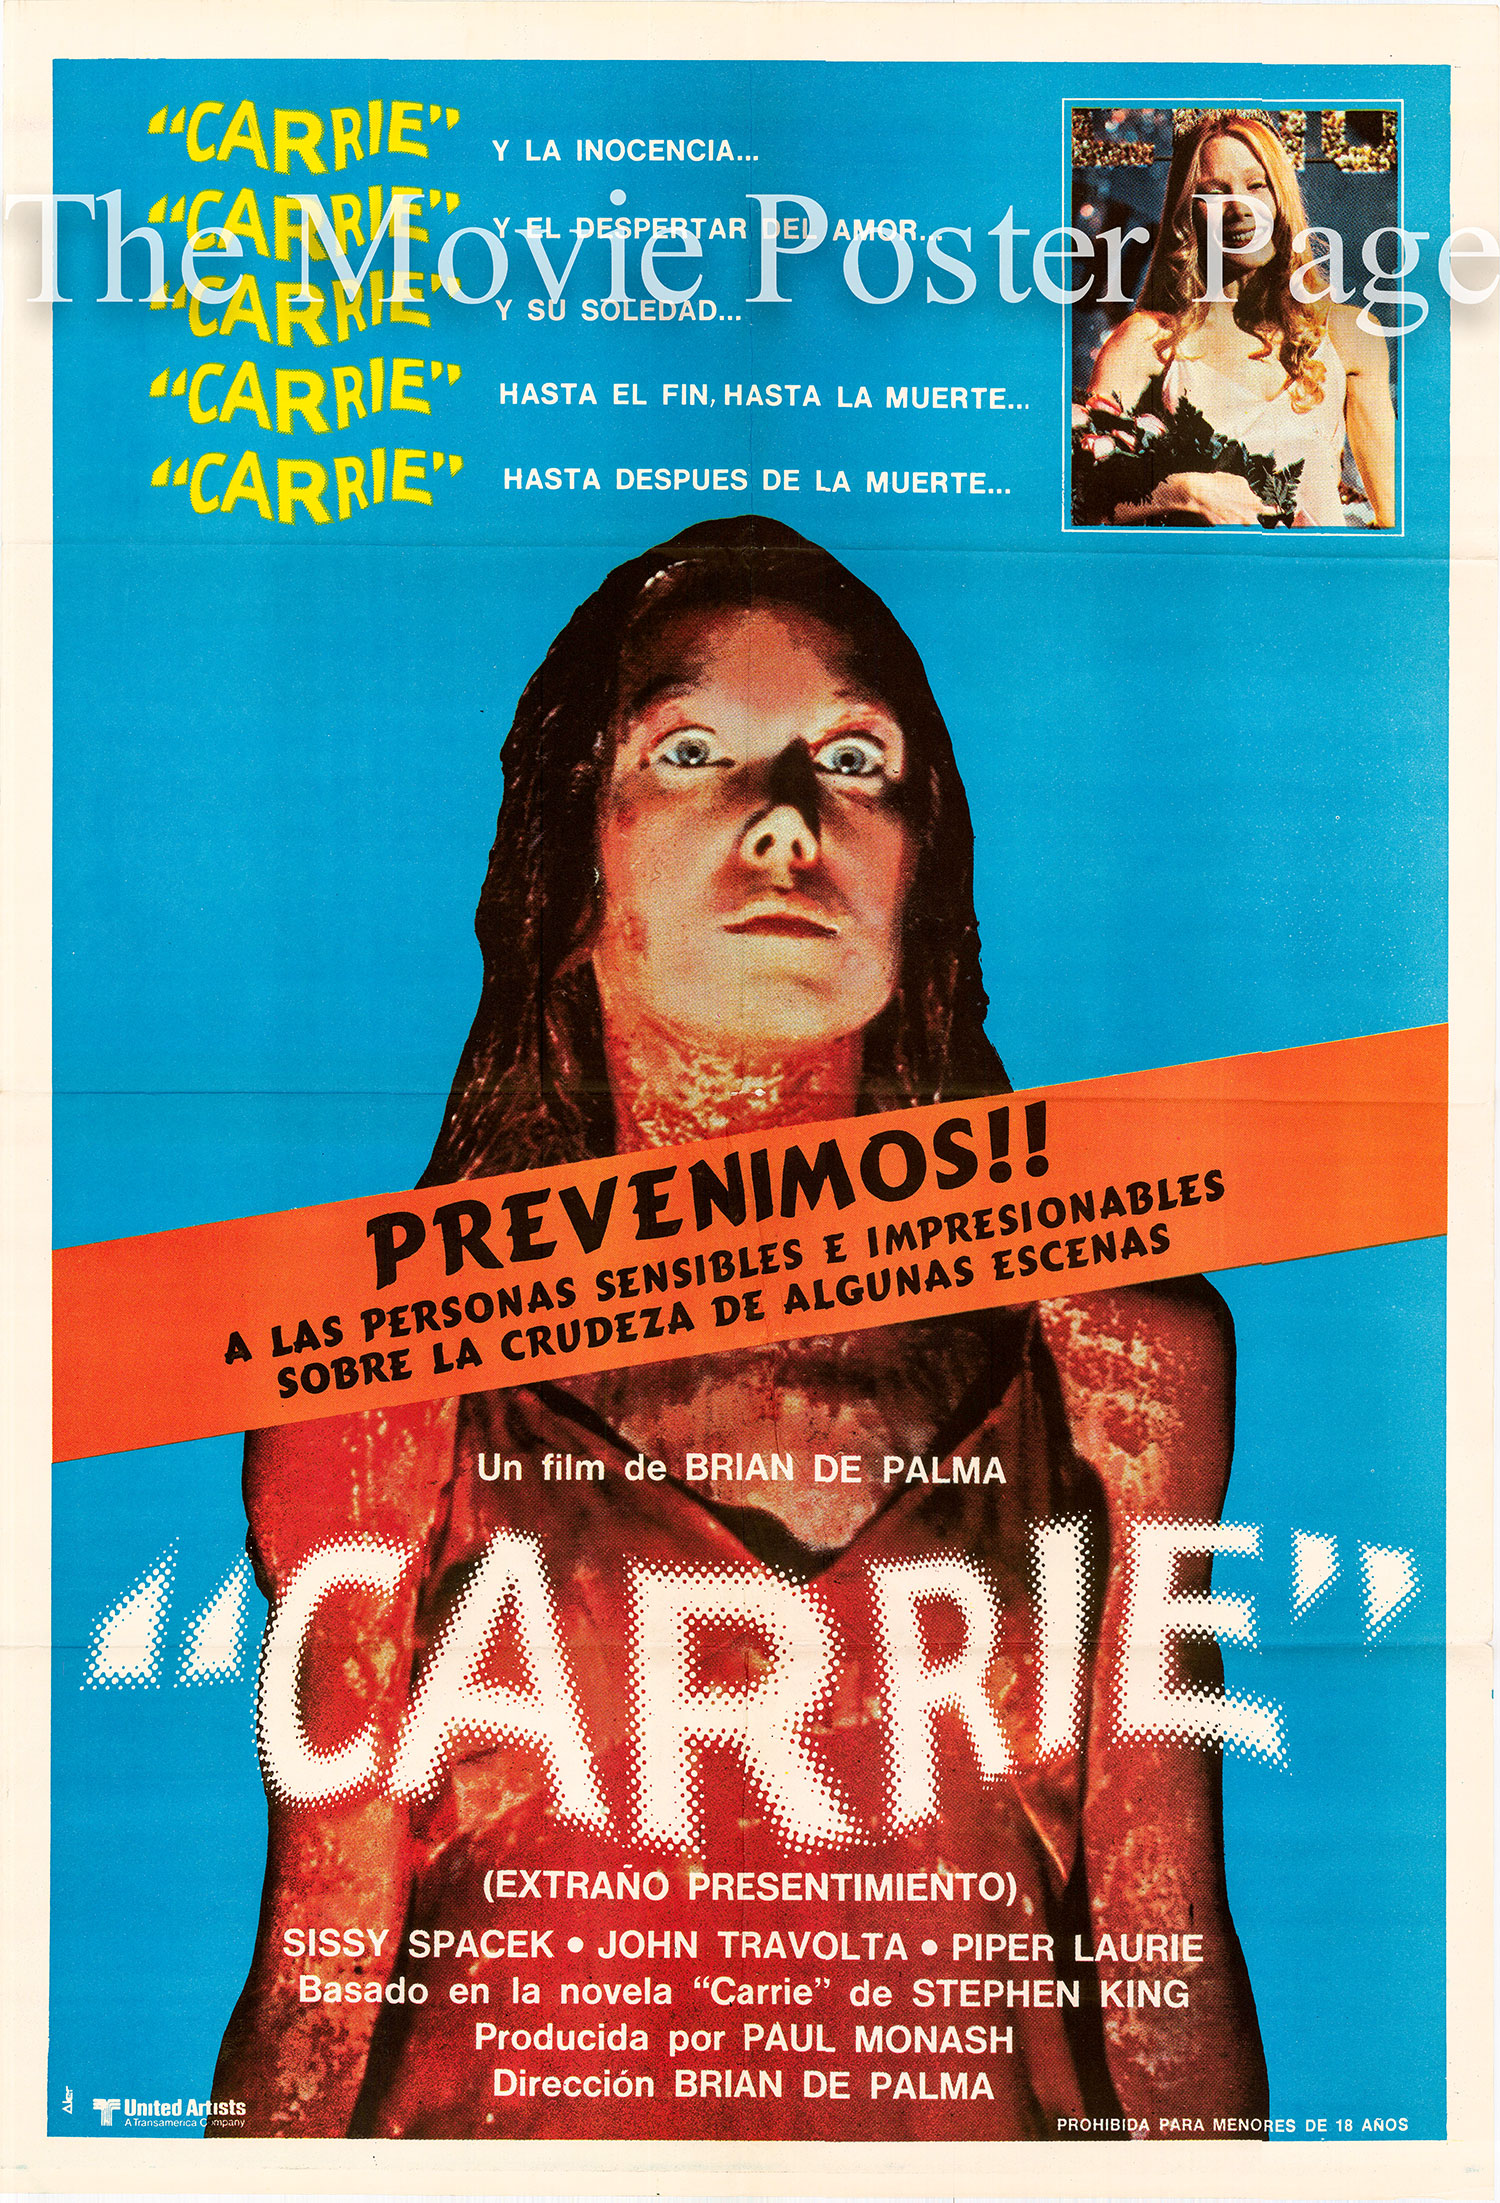 Pictured is an Argentine one-sheet poster for the 1976 Brian De Palma film Carrie starring Sissy Spacek as Carrie.